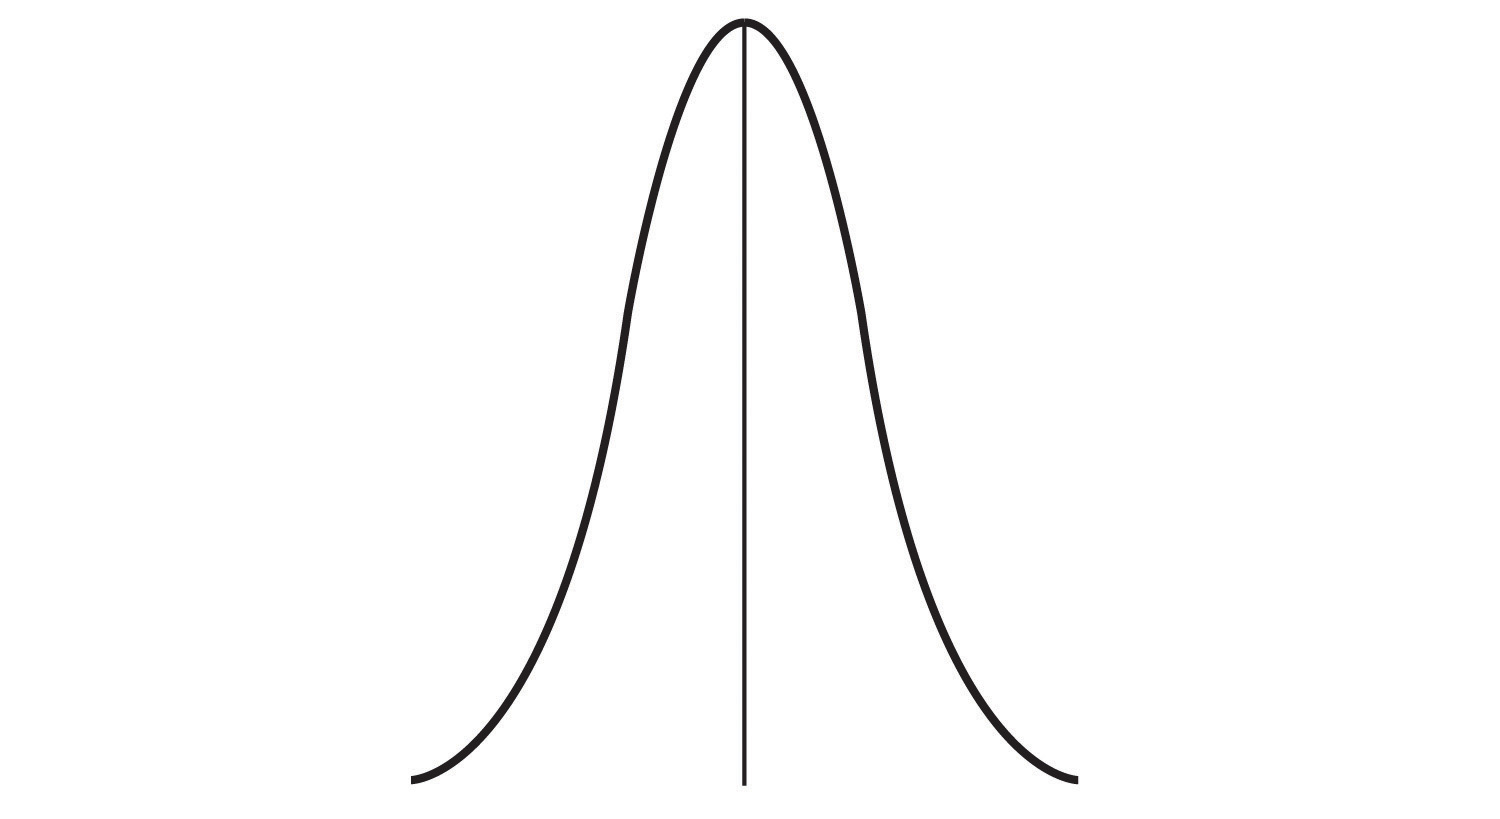 A line graph forms a narrow bell shape around the central tendency.